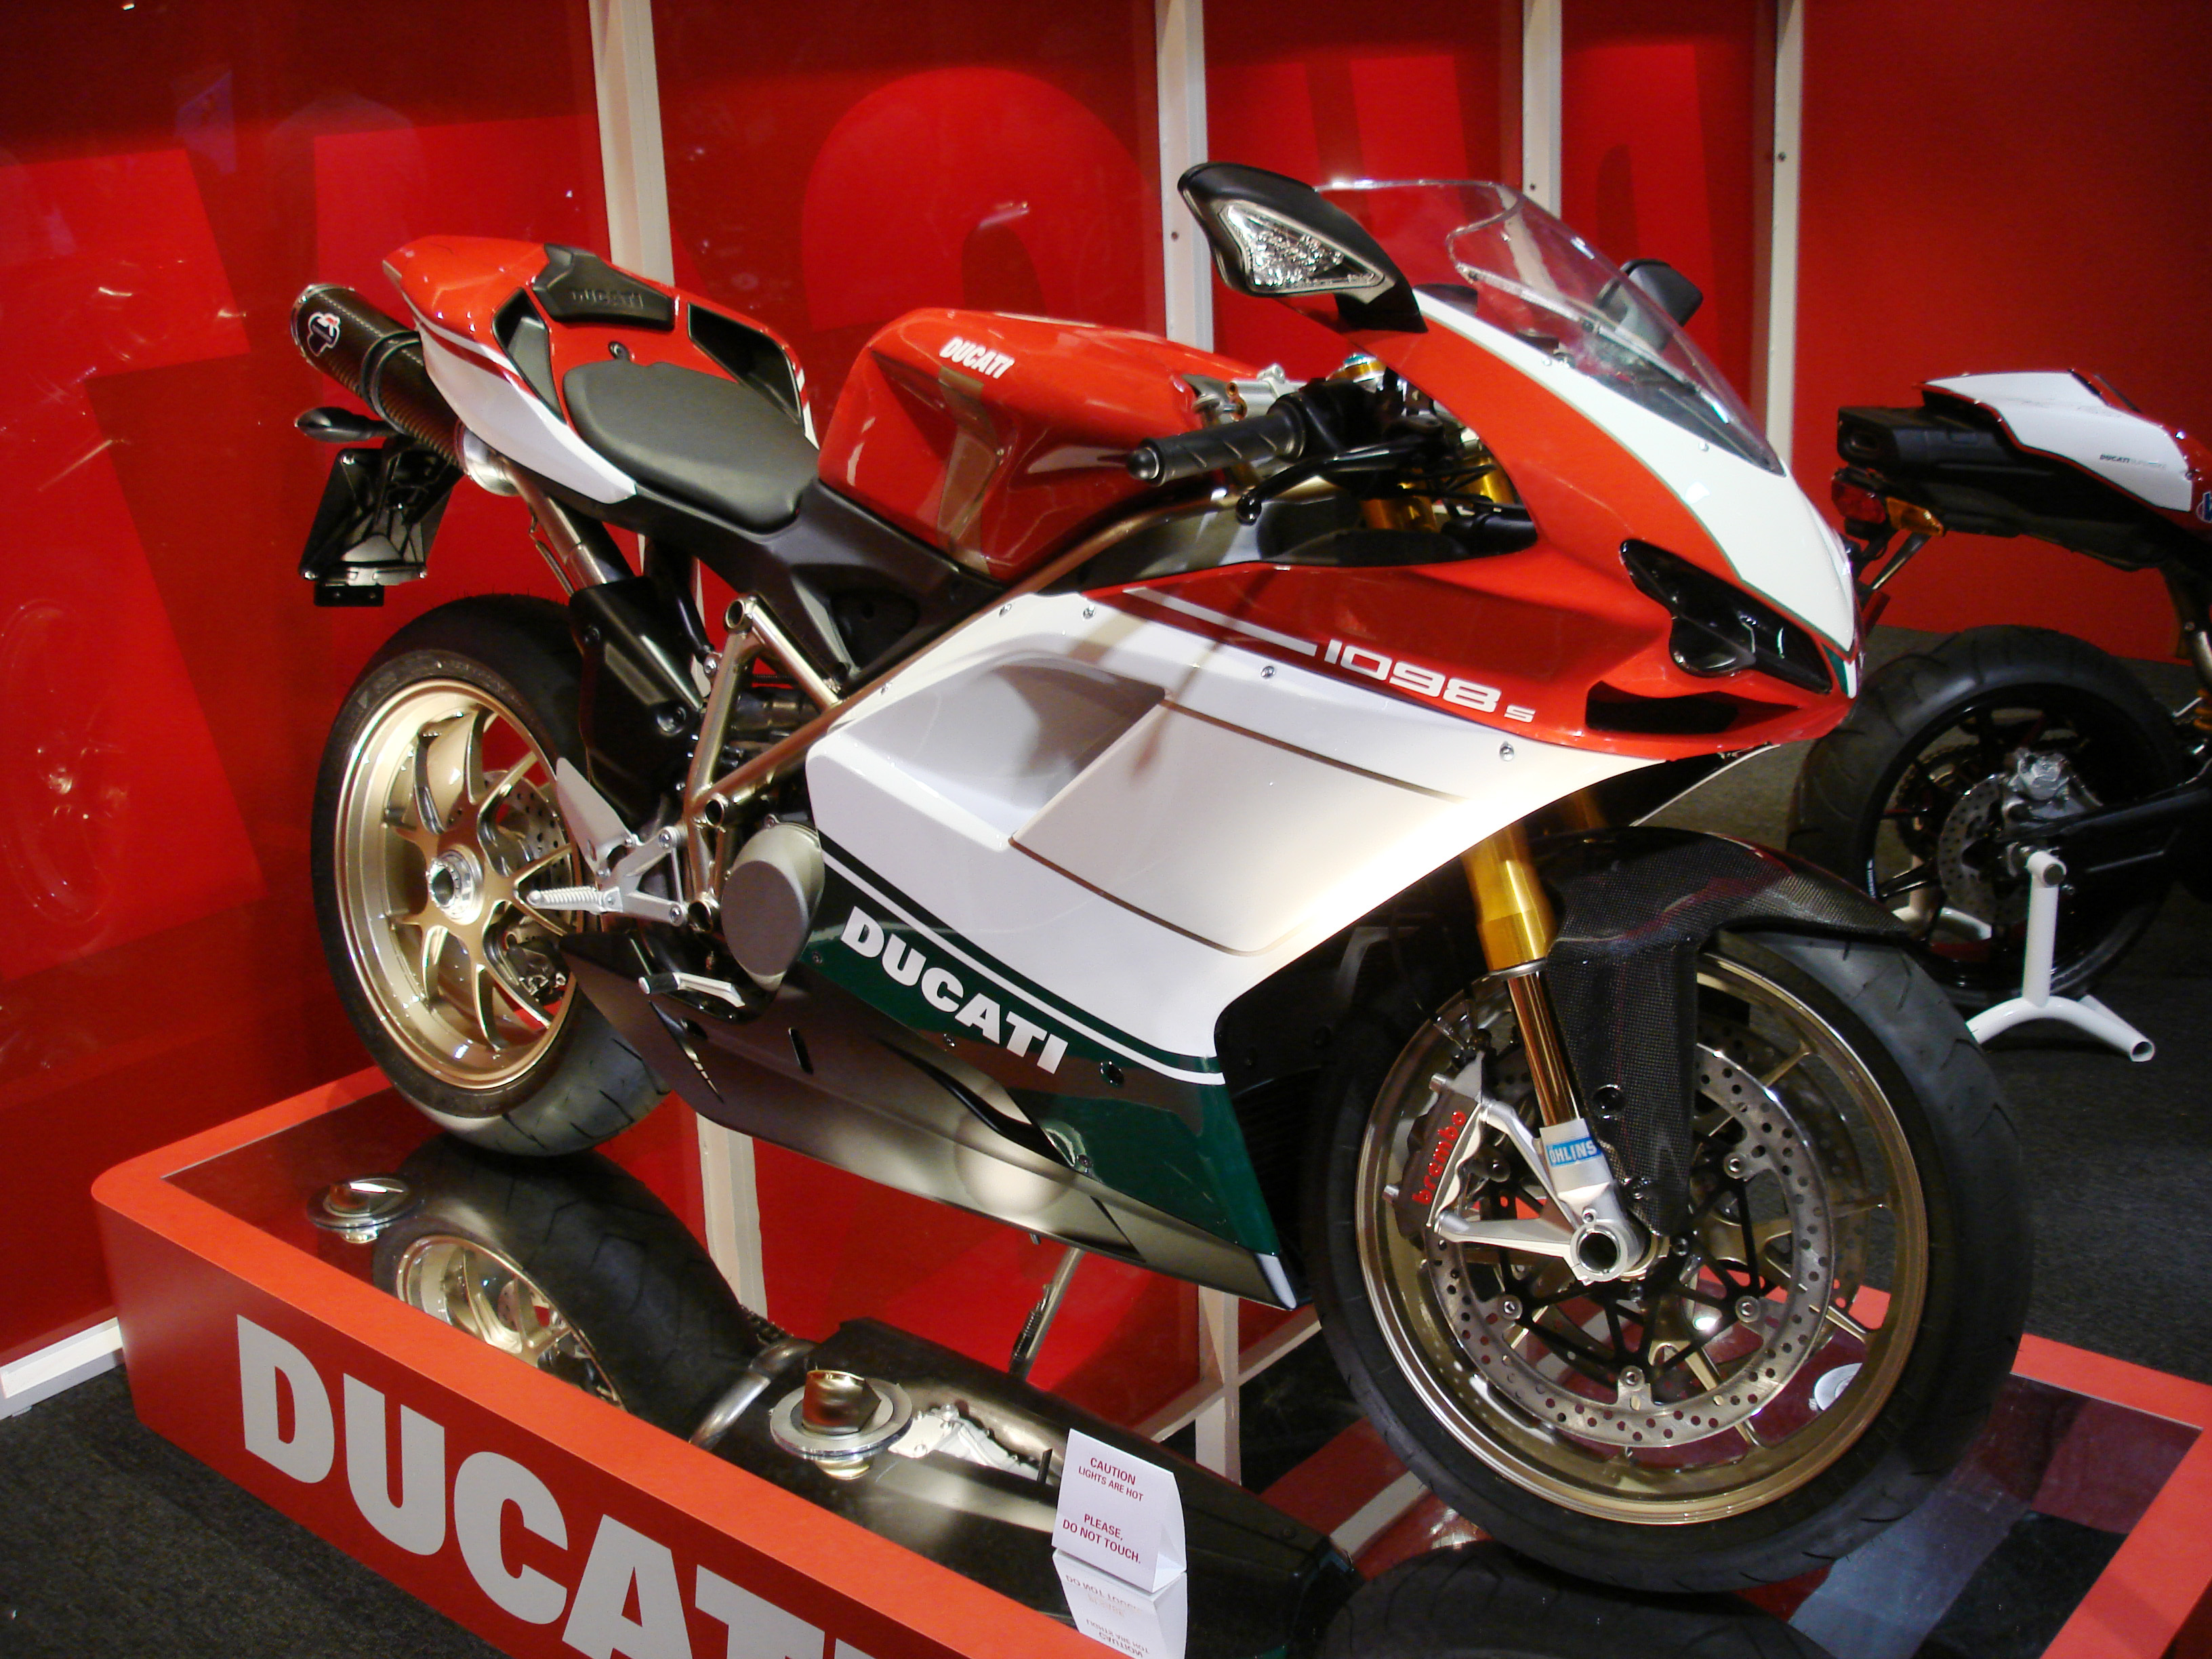 Ducati 98 SS images #9641